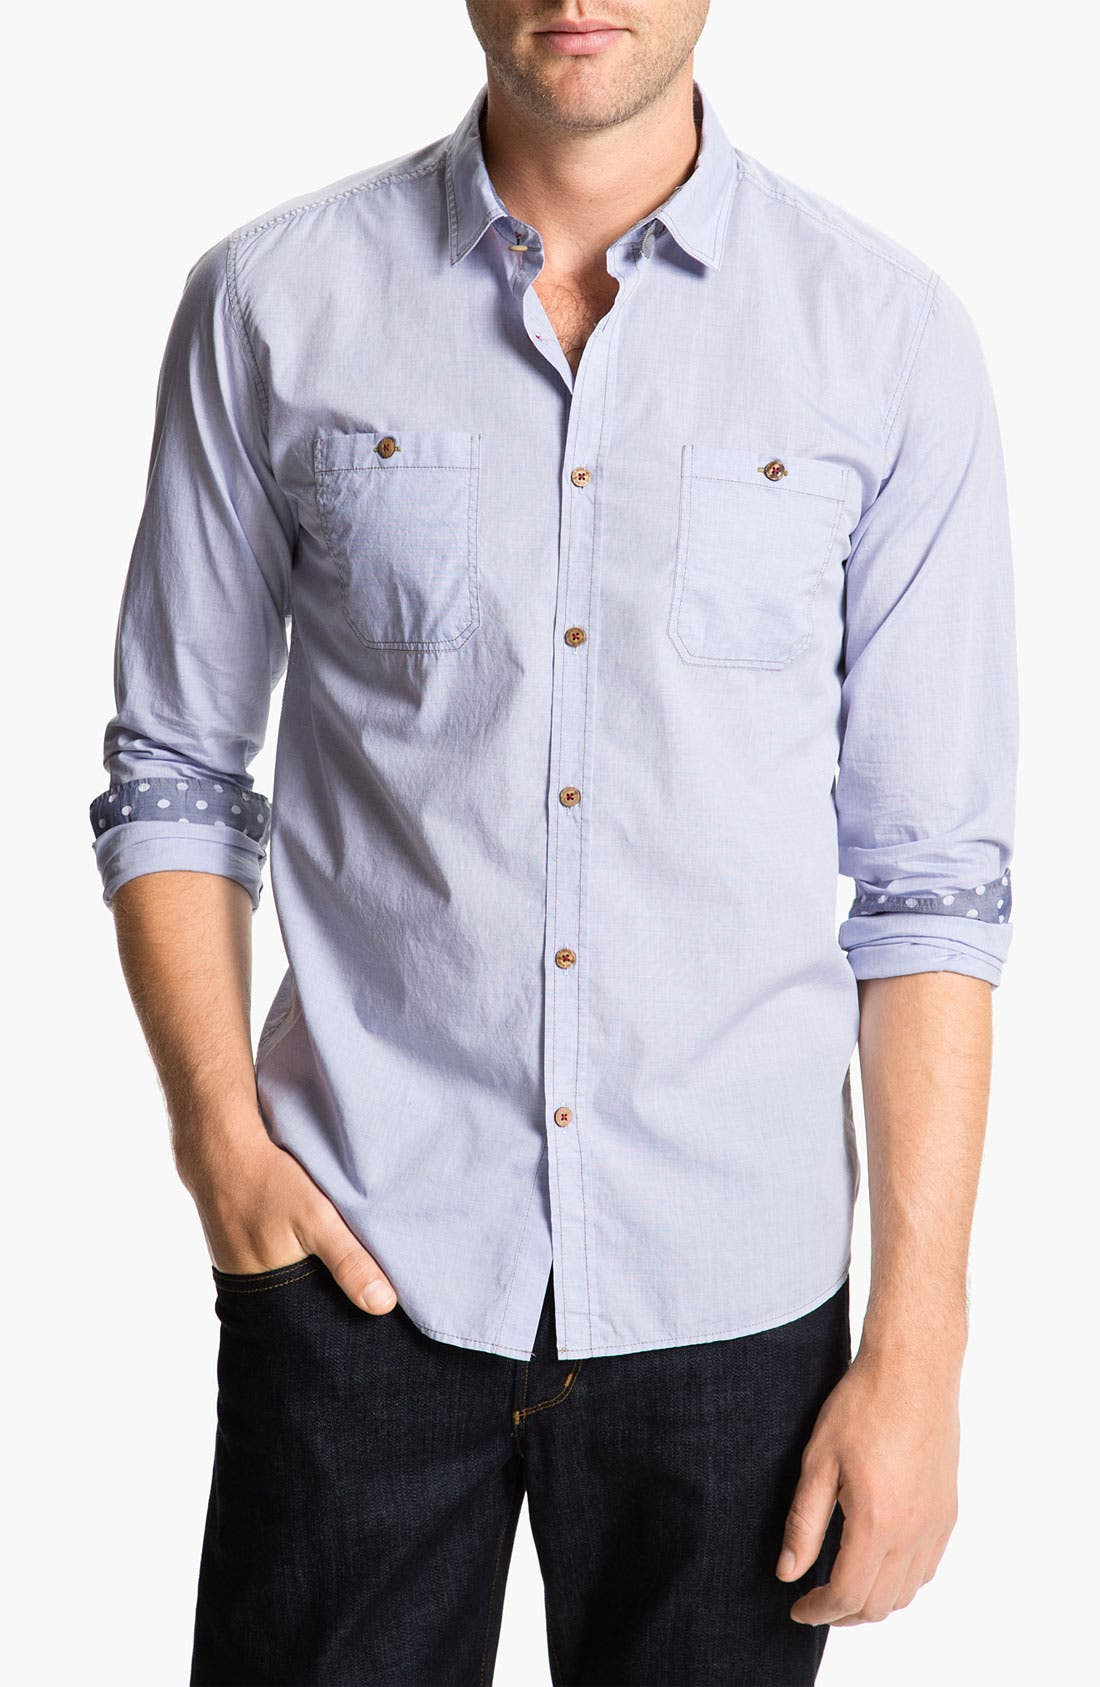 Alternate Image 1 Selected - Ted Baker London 'Pencar' Woven Sport Shirt